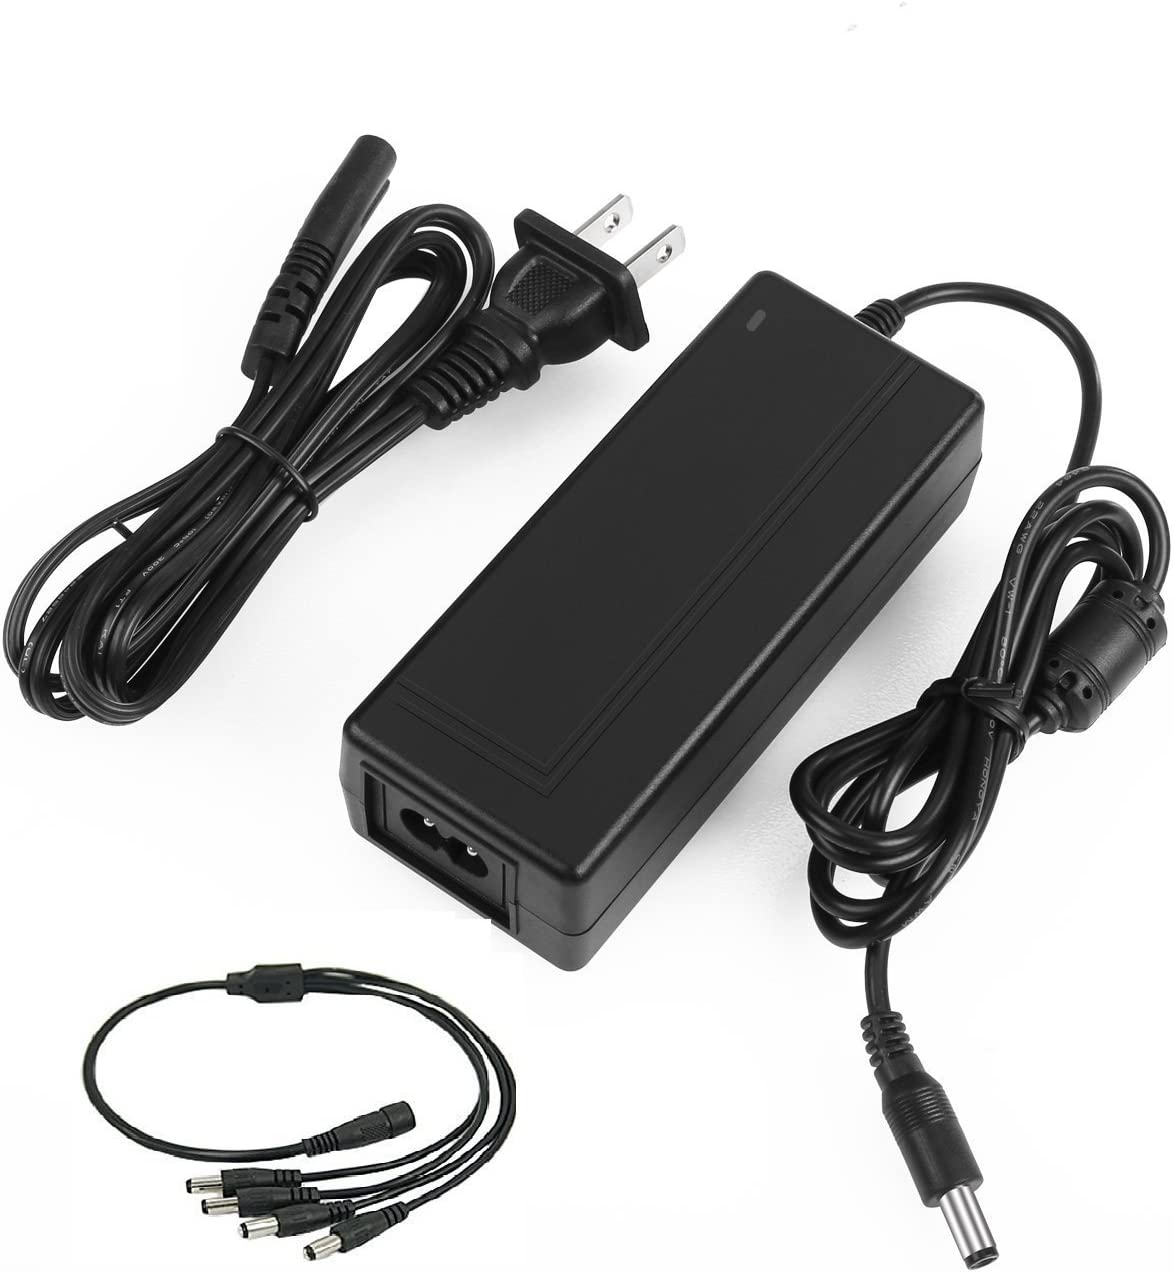 1 to 4 Power Splitter for CCTV Security Camera AC//DC Power Adapter 12V 3Amp